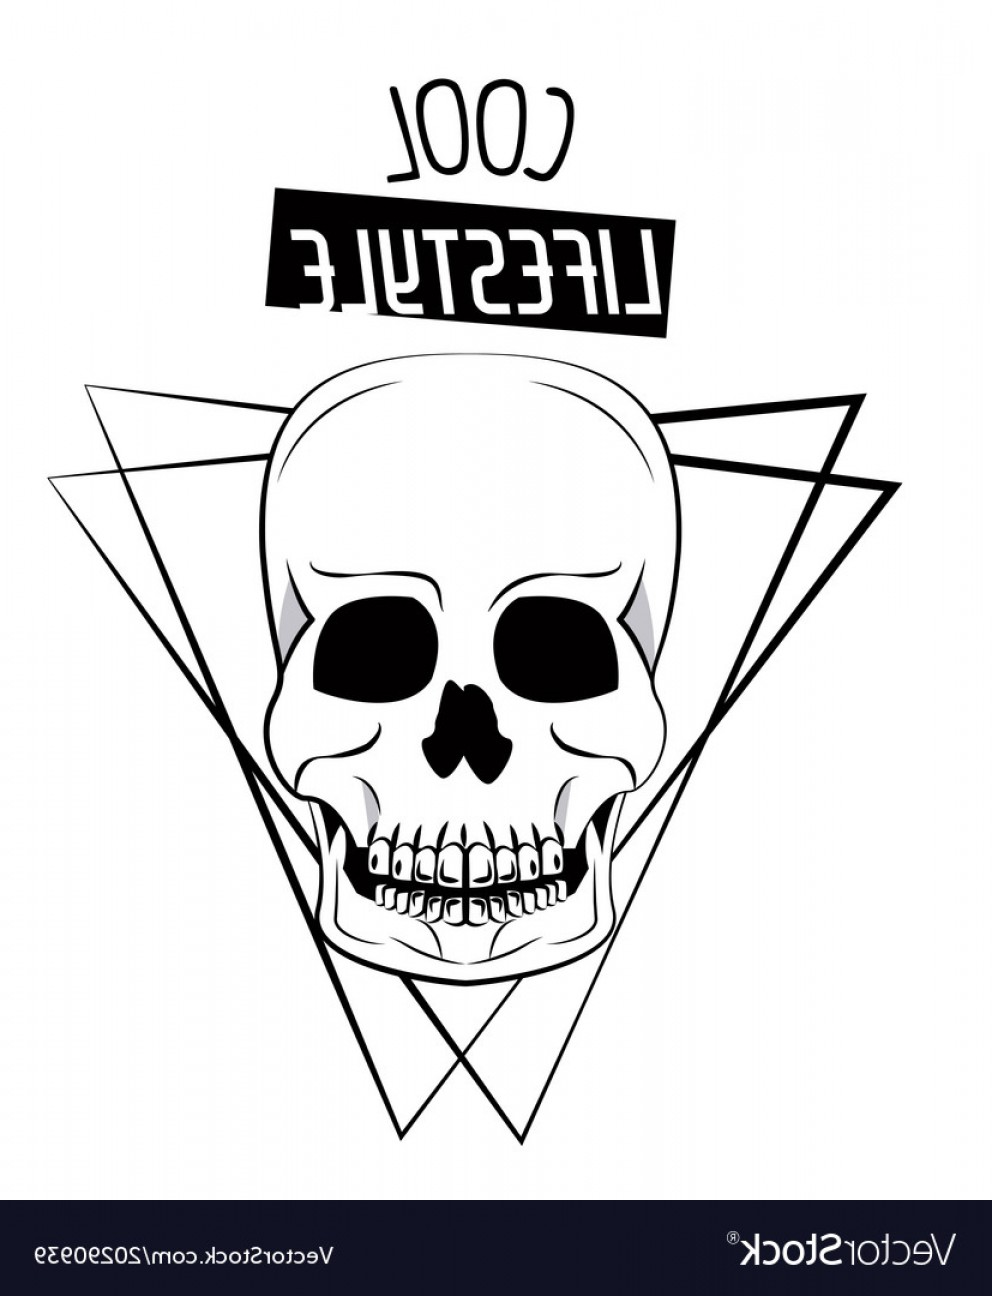 Cool Skull Vector: Cool Skull Print For Tshirt Vector